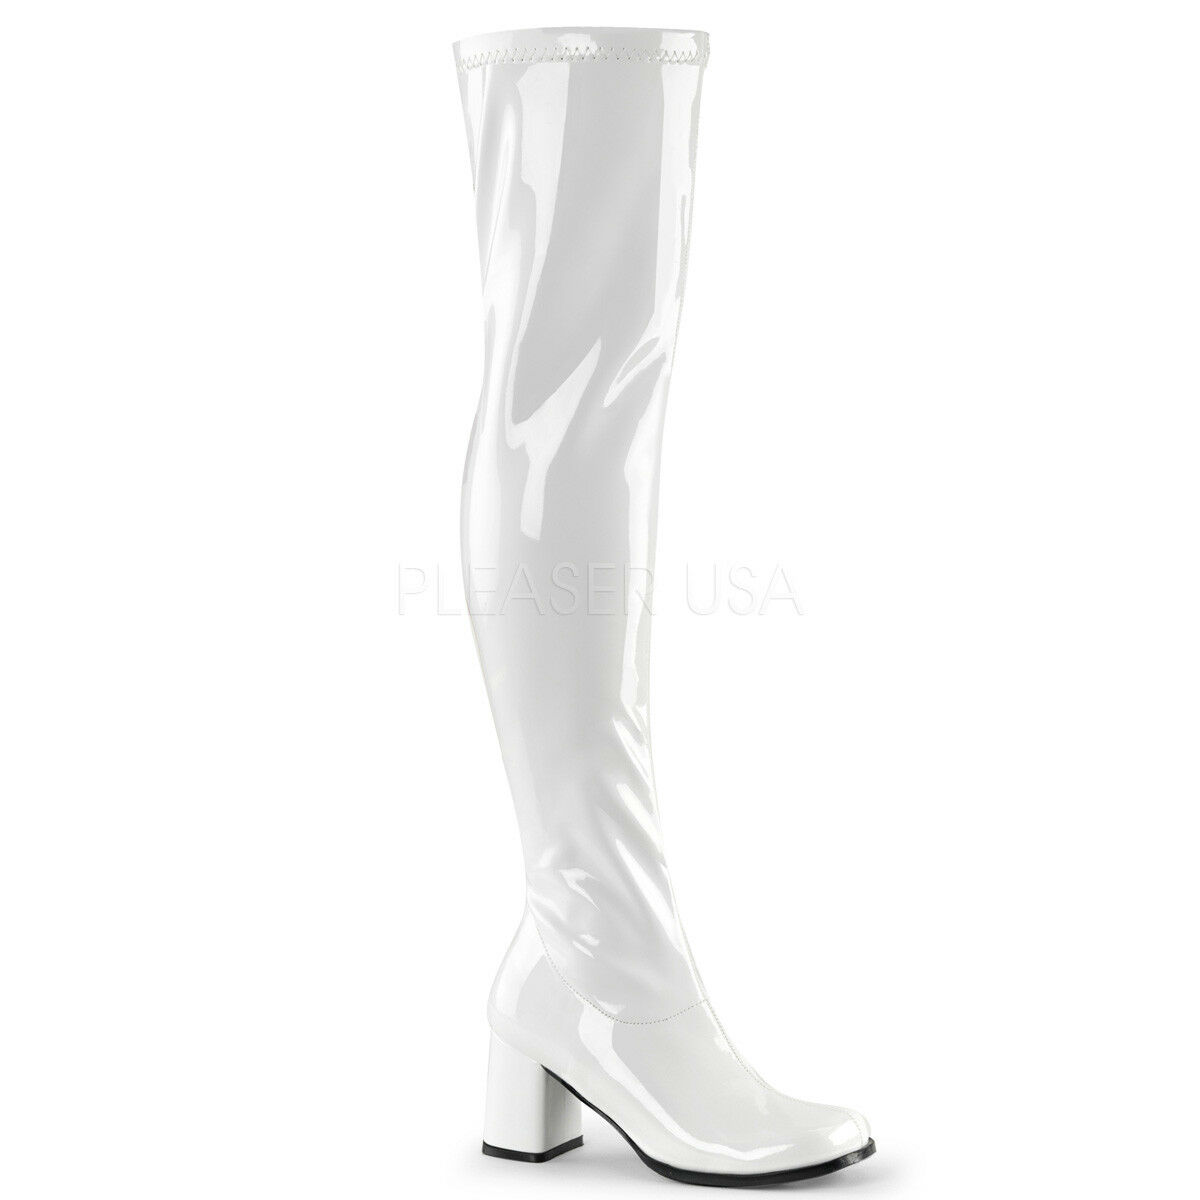 Thigh Thigh Thigh High 60s 70s Hippie Burlesque GoGo Over The Knee White Boots c66442